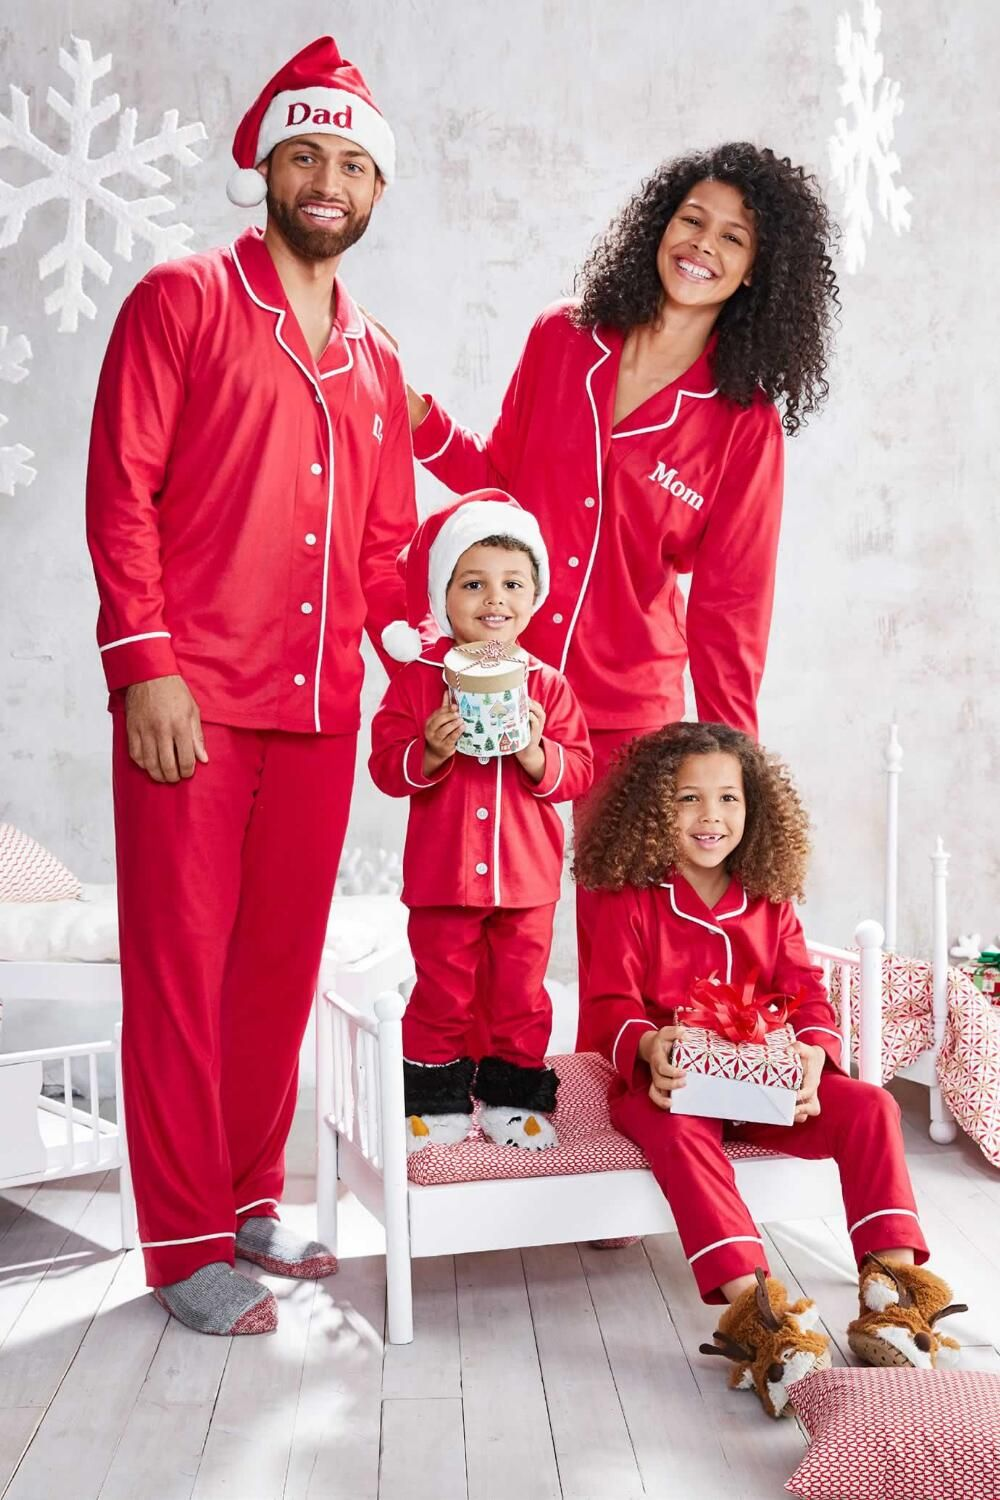 378960ff32 Adults Personalized Classic Red Microfleece PJ s